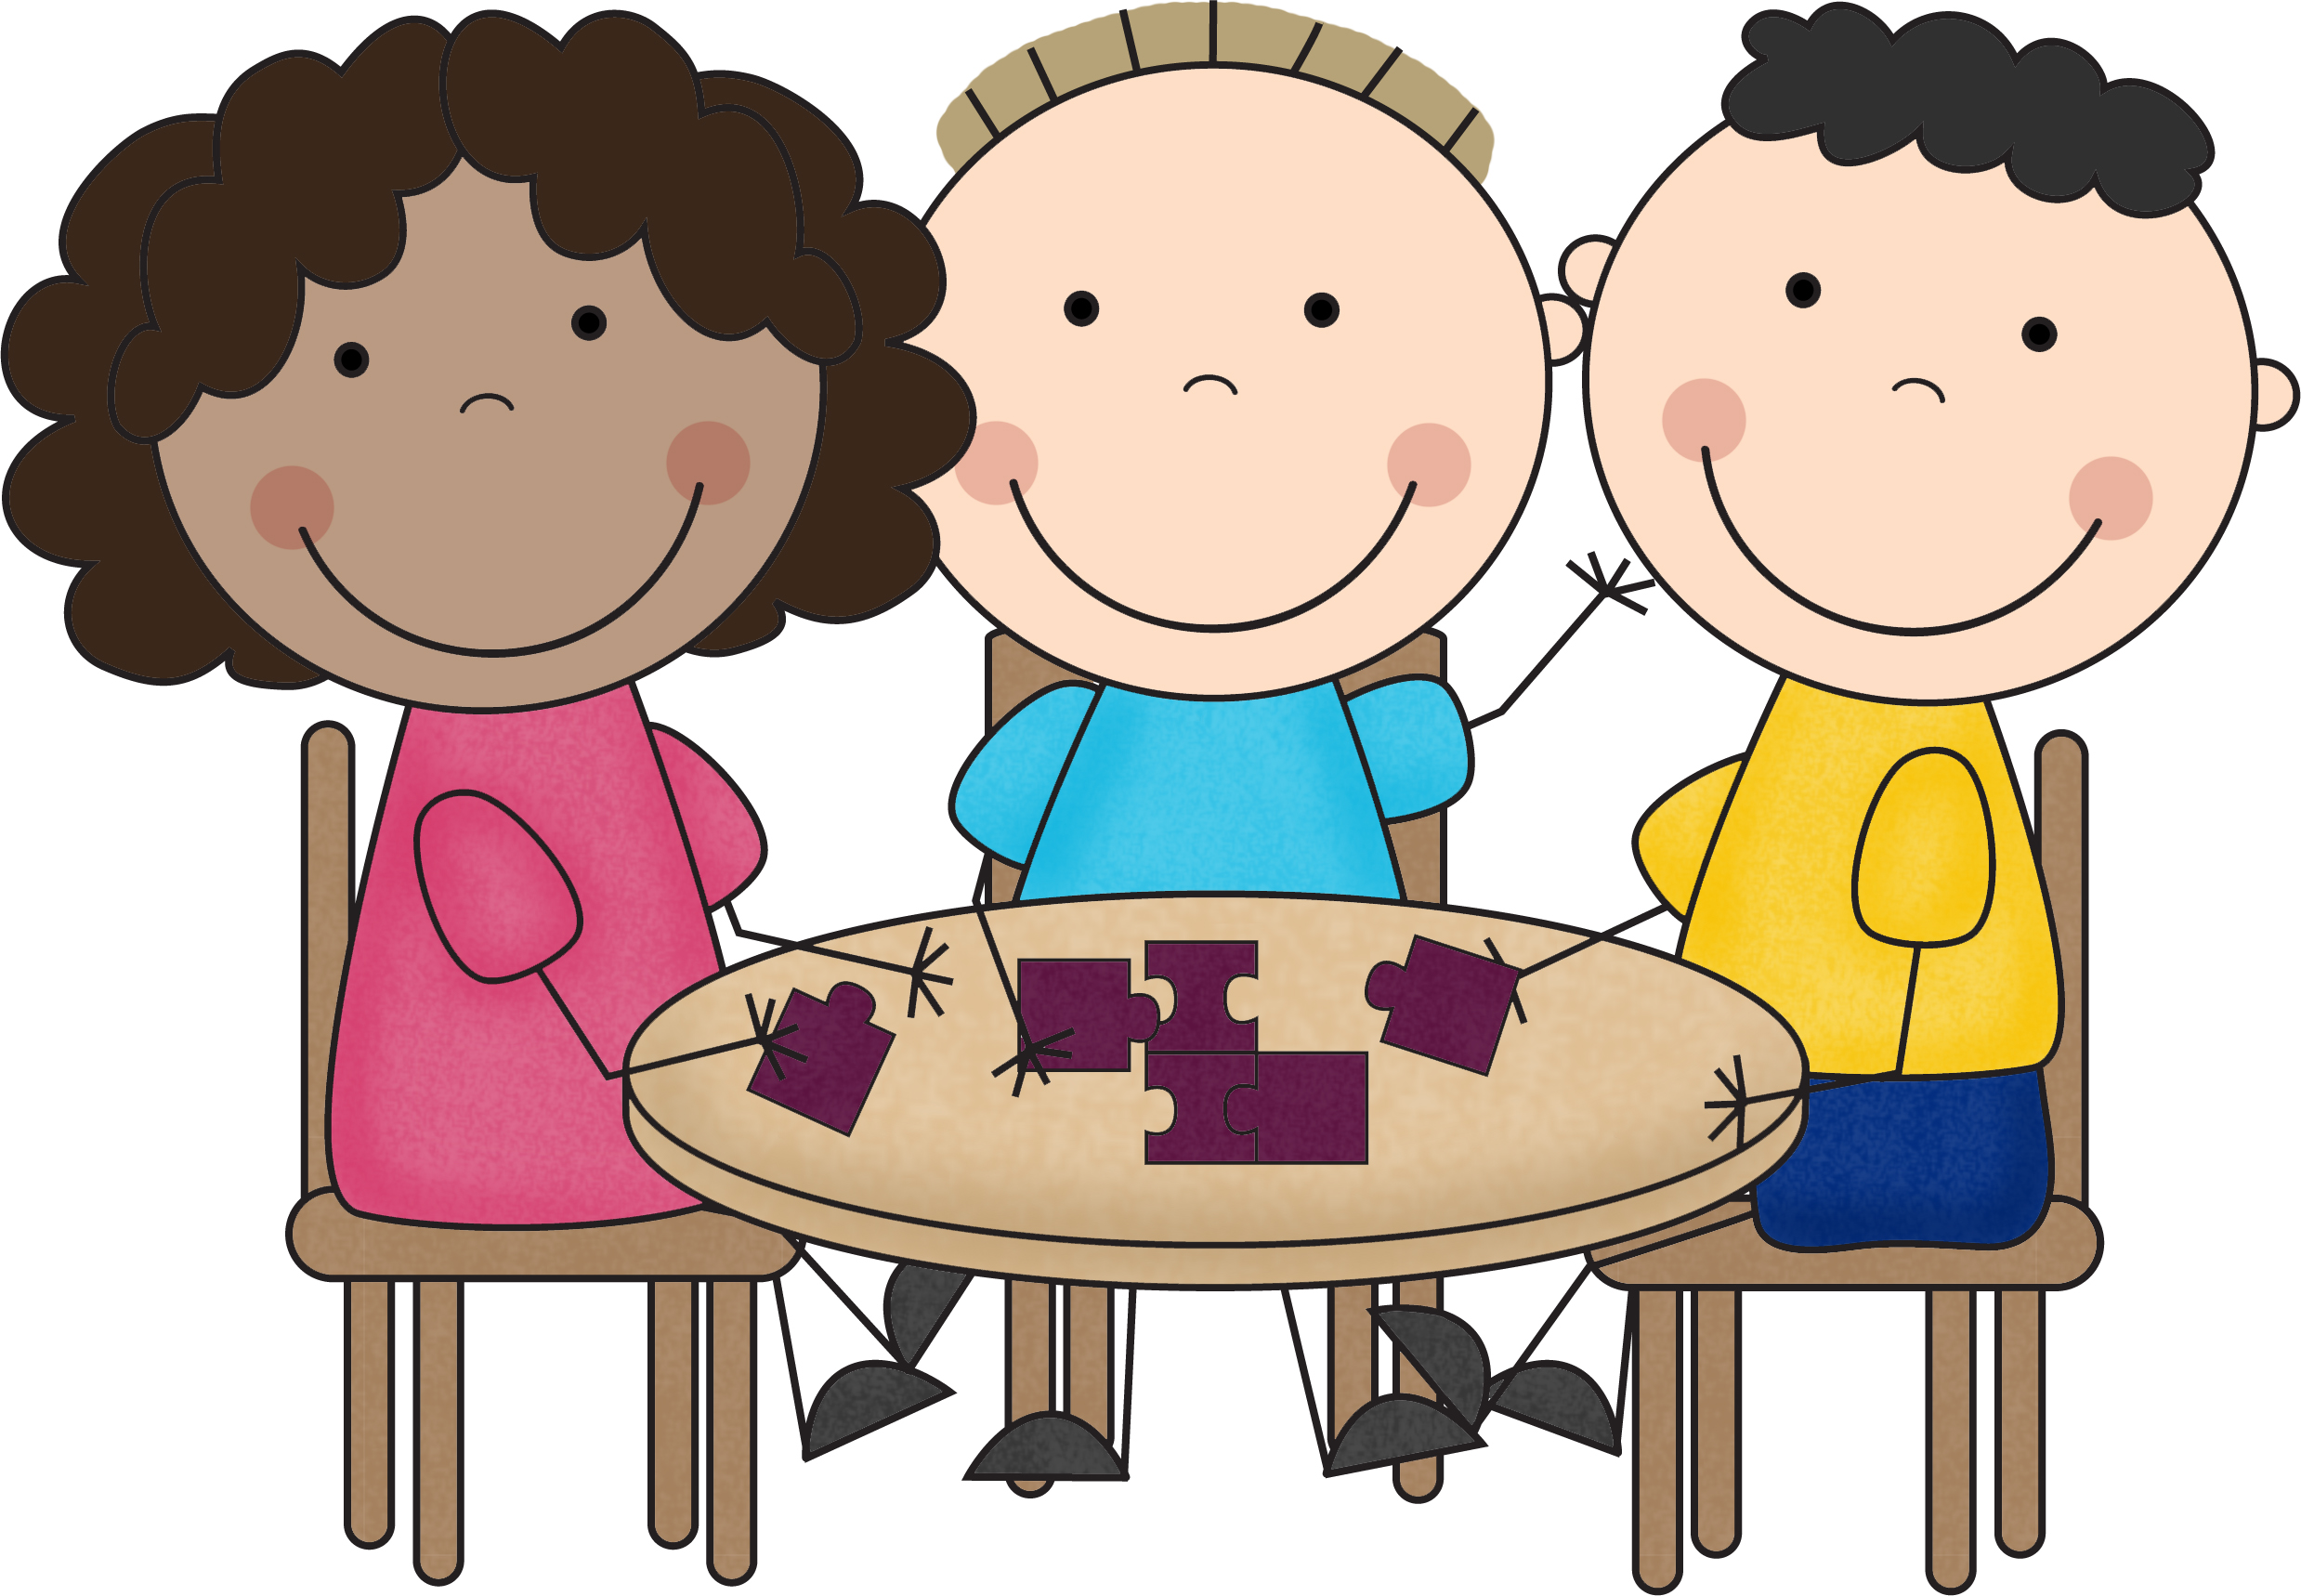 Free clipart small group at a table. Groups clip art images